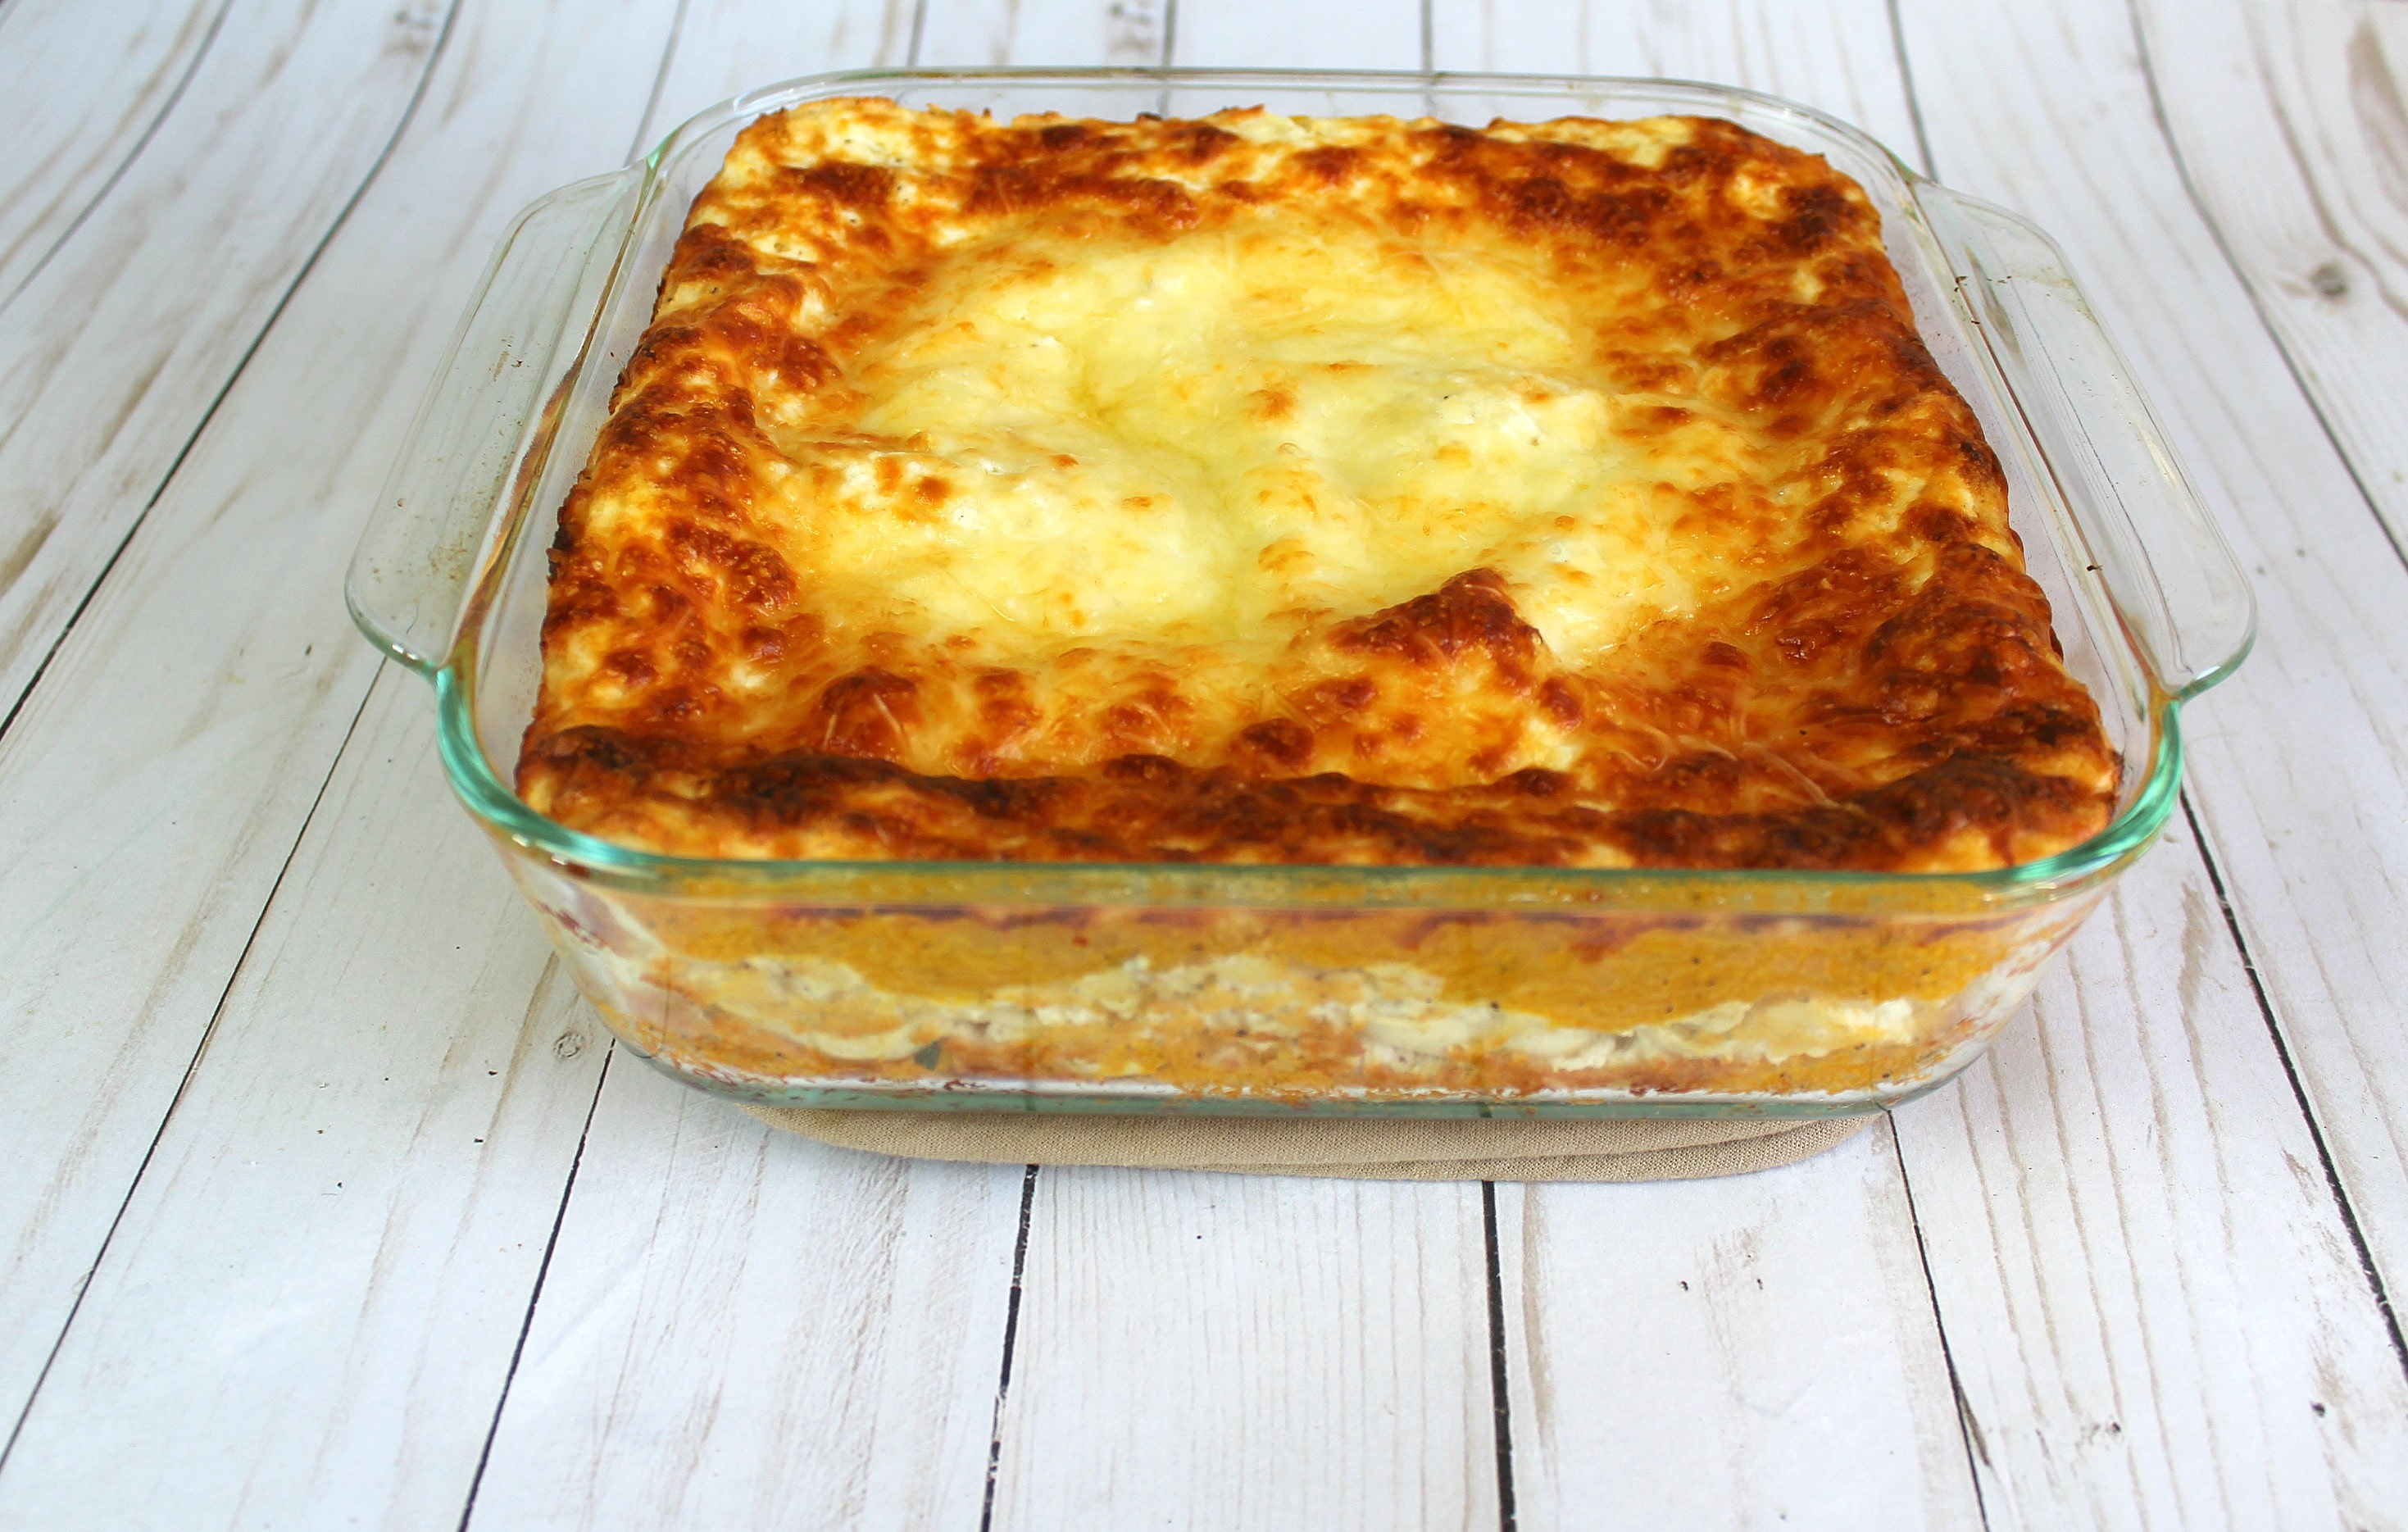 Bake lasagna for 30 minutes, then remove foil and cook for 25 more minutes uncovered.